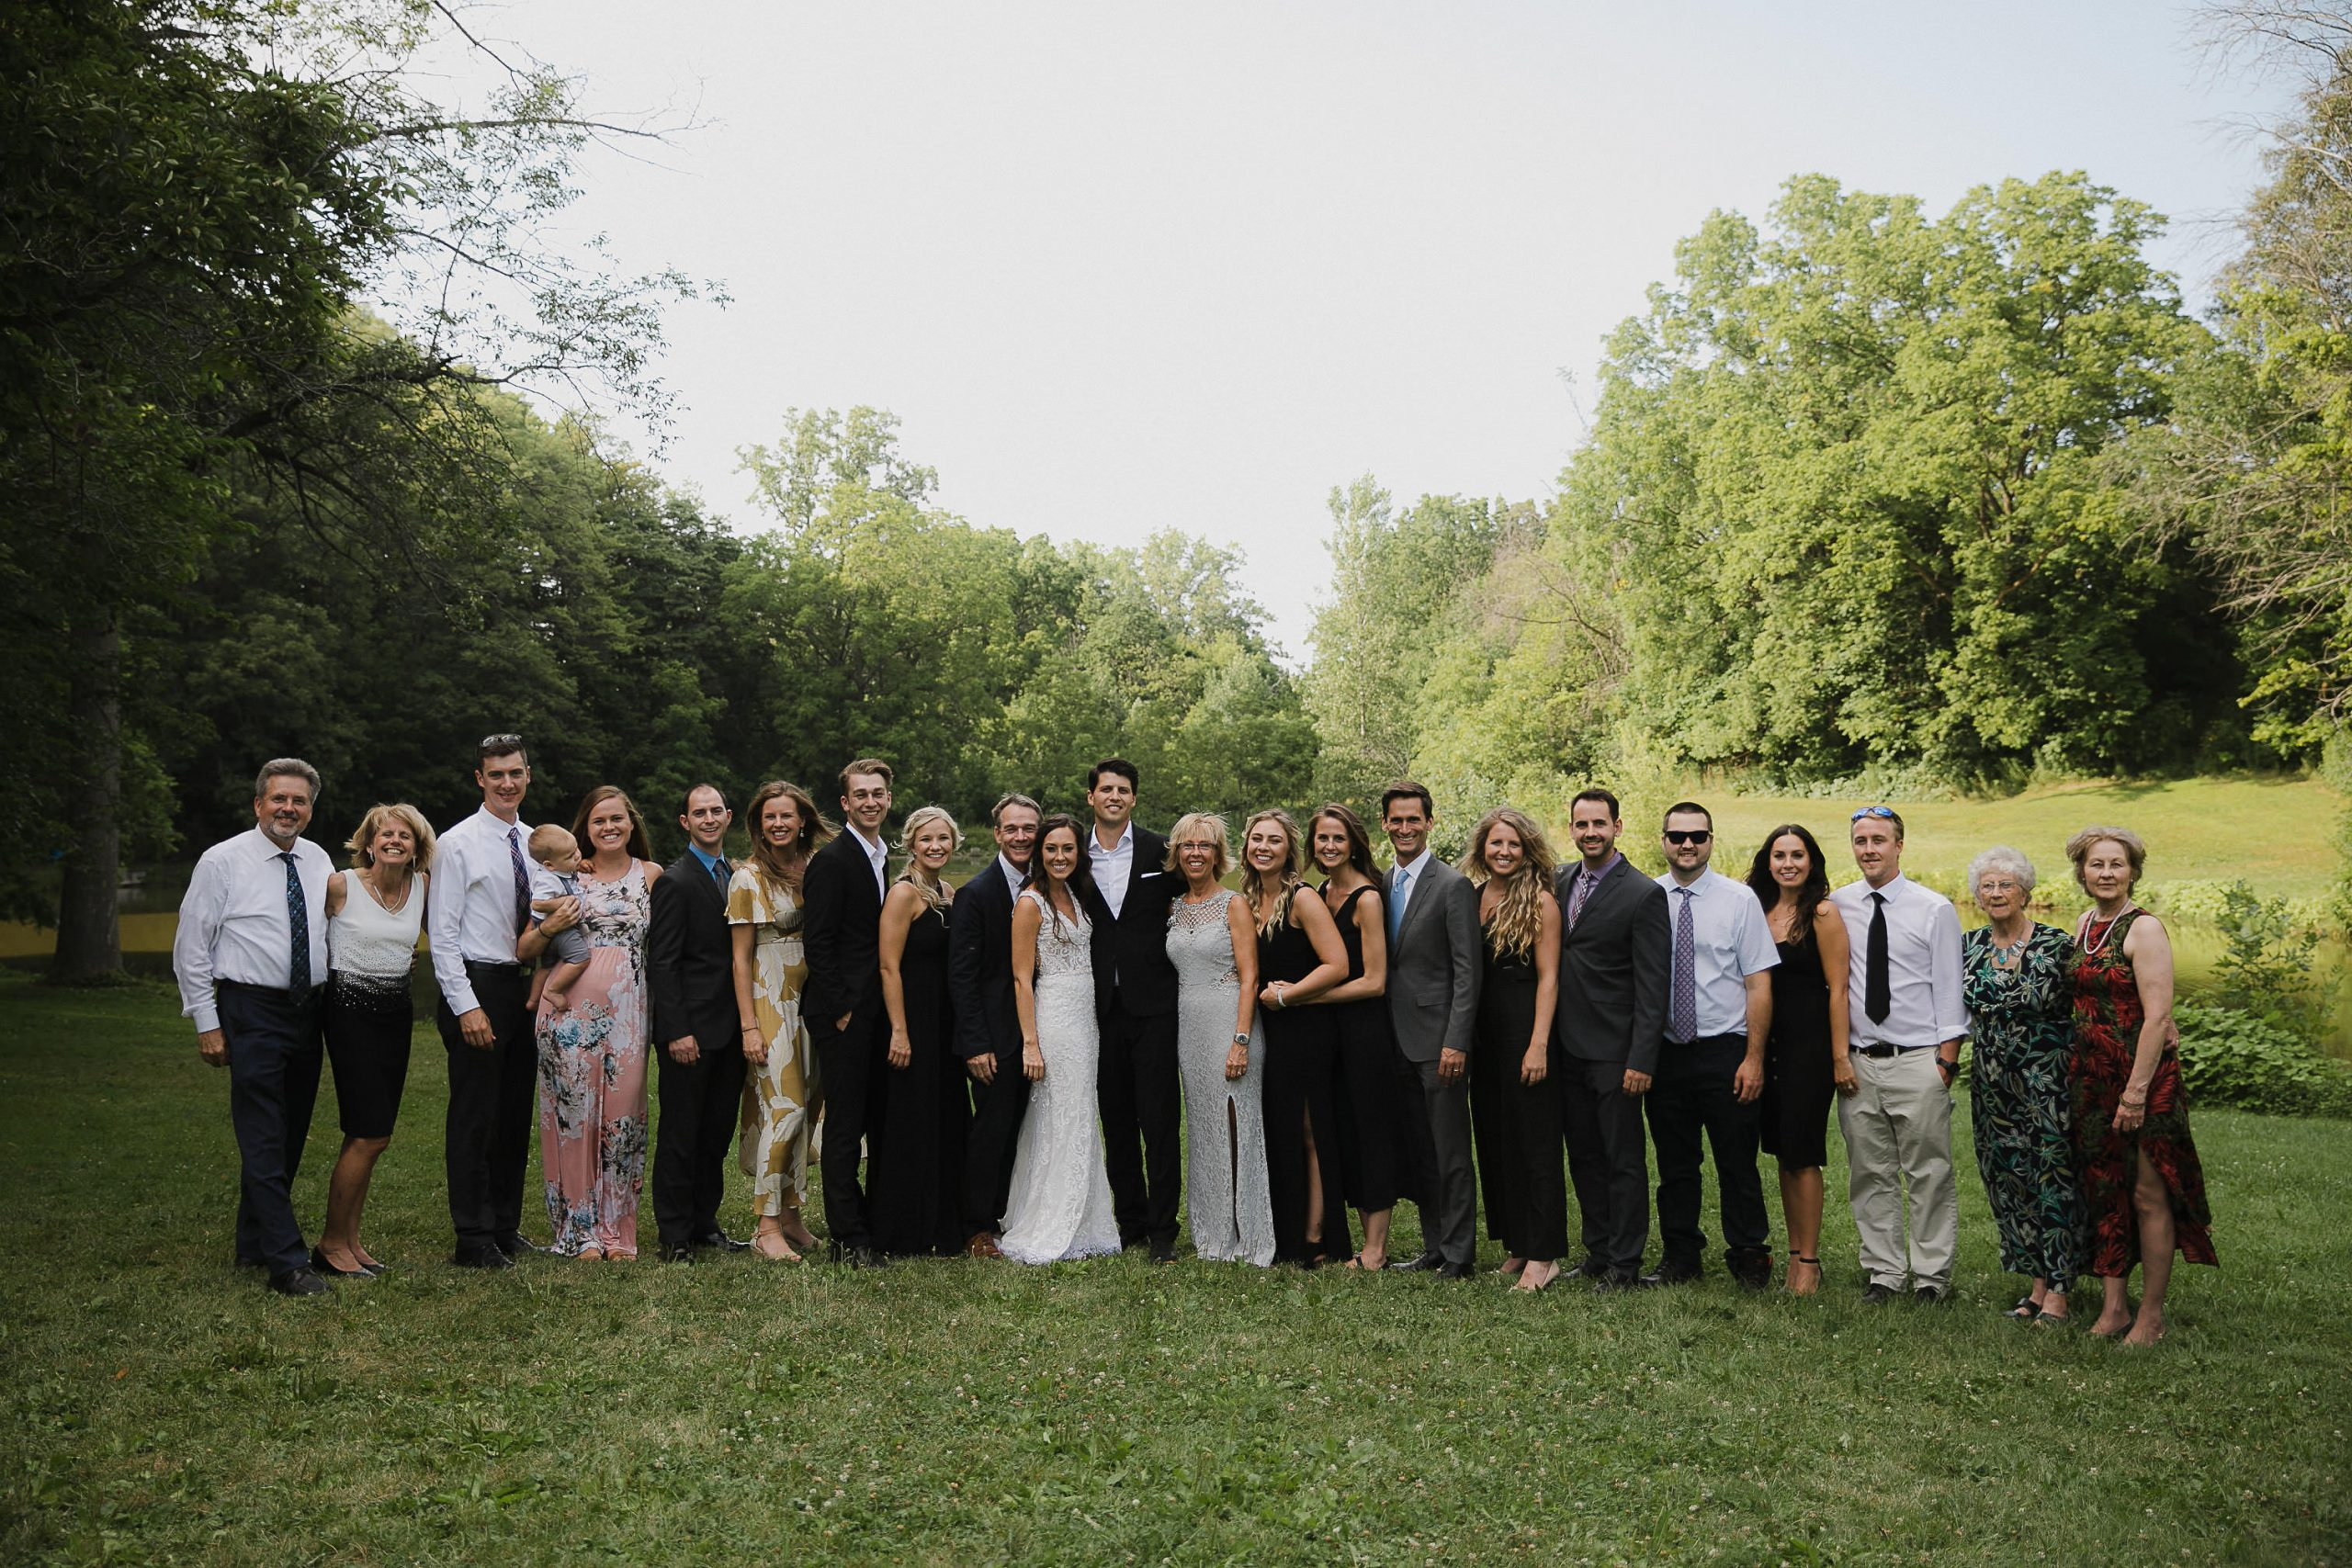 Wedding photo family photos in front of a pond, harsh light full daylight, big group photos